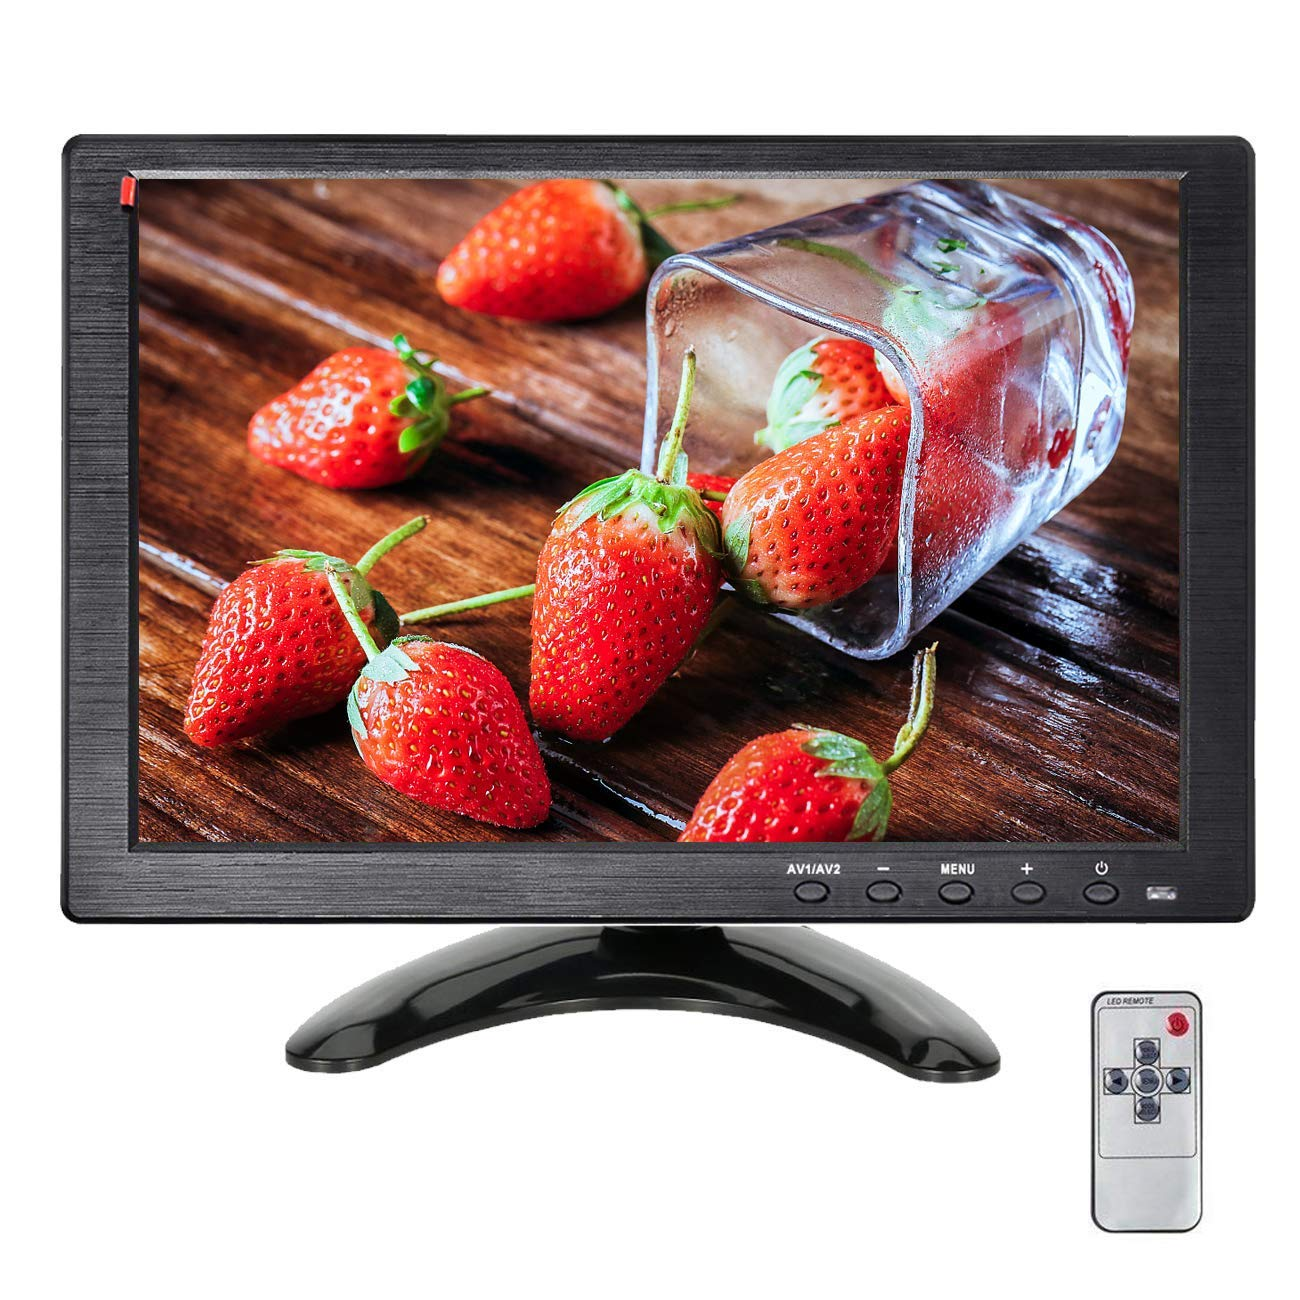 10.1Inch Portable Security Monitors HDMI Displays YUZES 1024 x 600 Resolution TFT LCD Video Screen with VAG AV USB BNC Input Remote Controller for PC Mini Small TV Camera Laptop IPS Cheap Monitor by YUZES